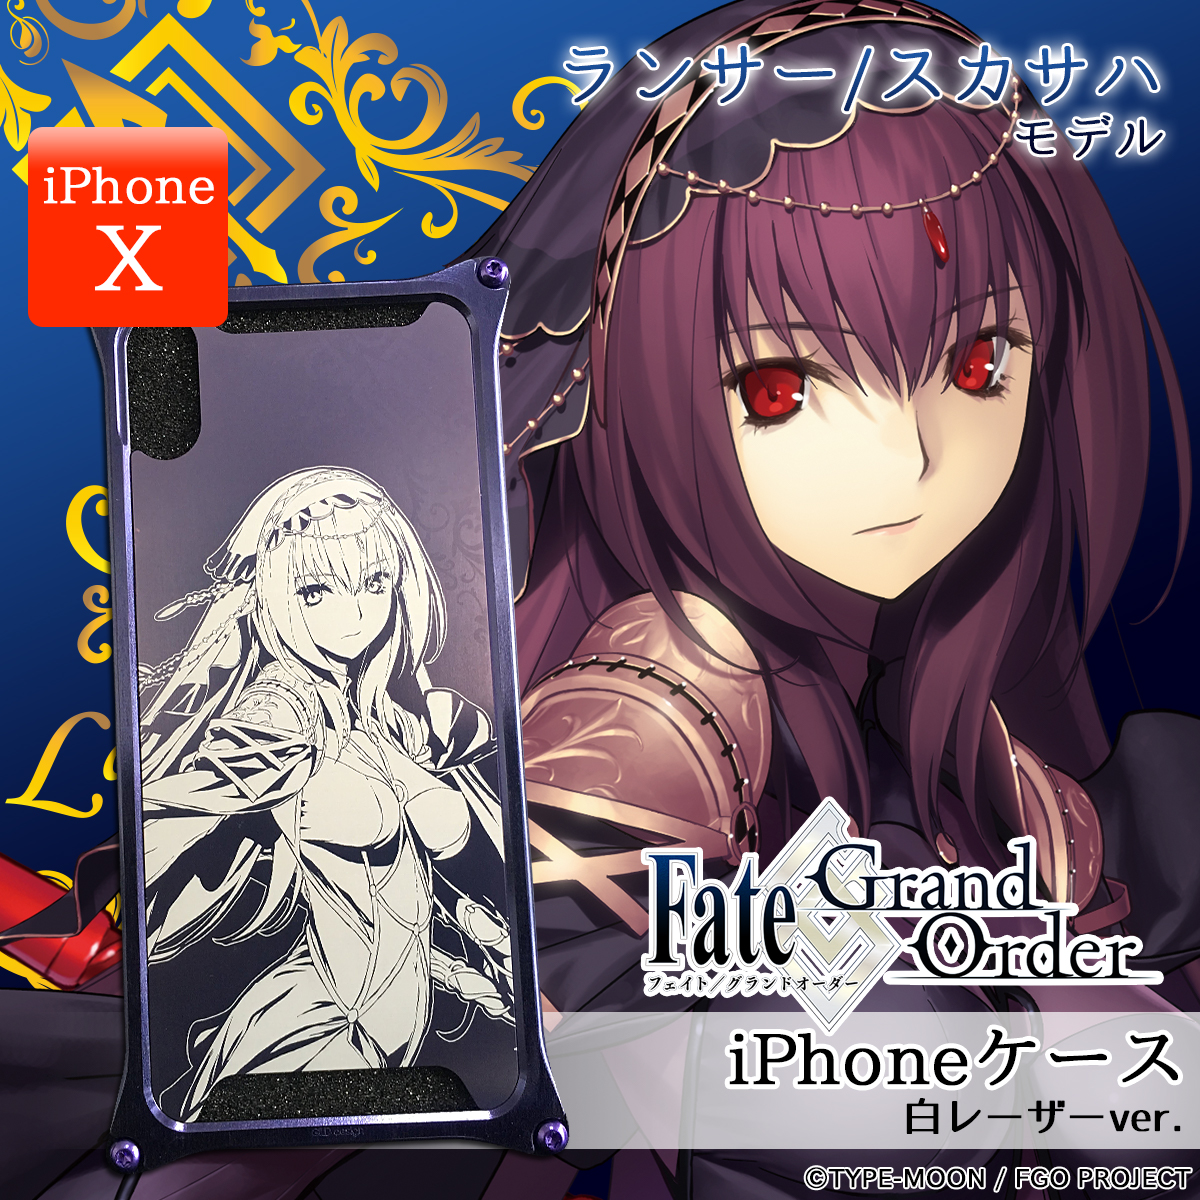 『Fate/Grand Order』×『GILD design』iPhoneXケース ランサー/スカサハ 白レーザーver.